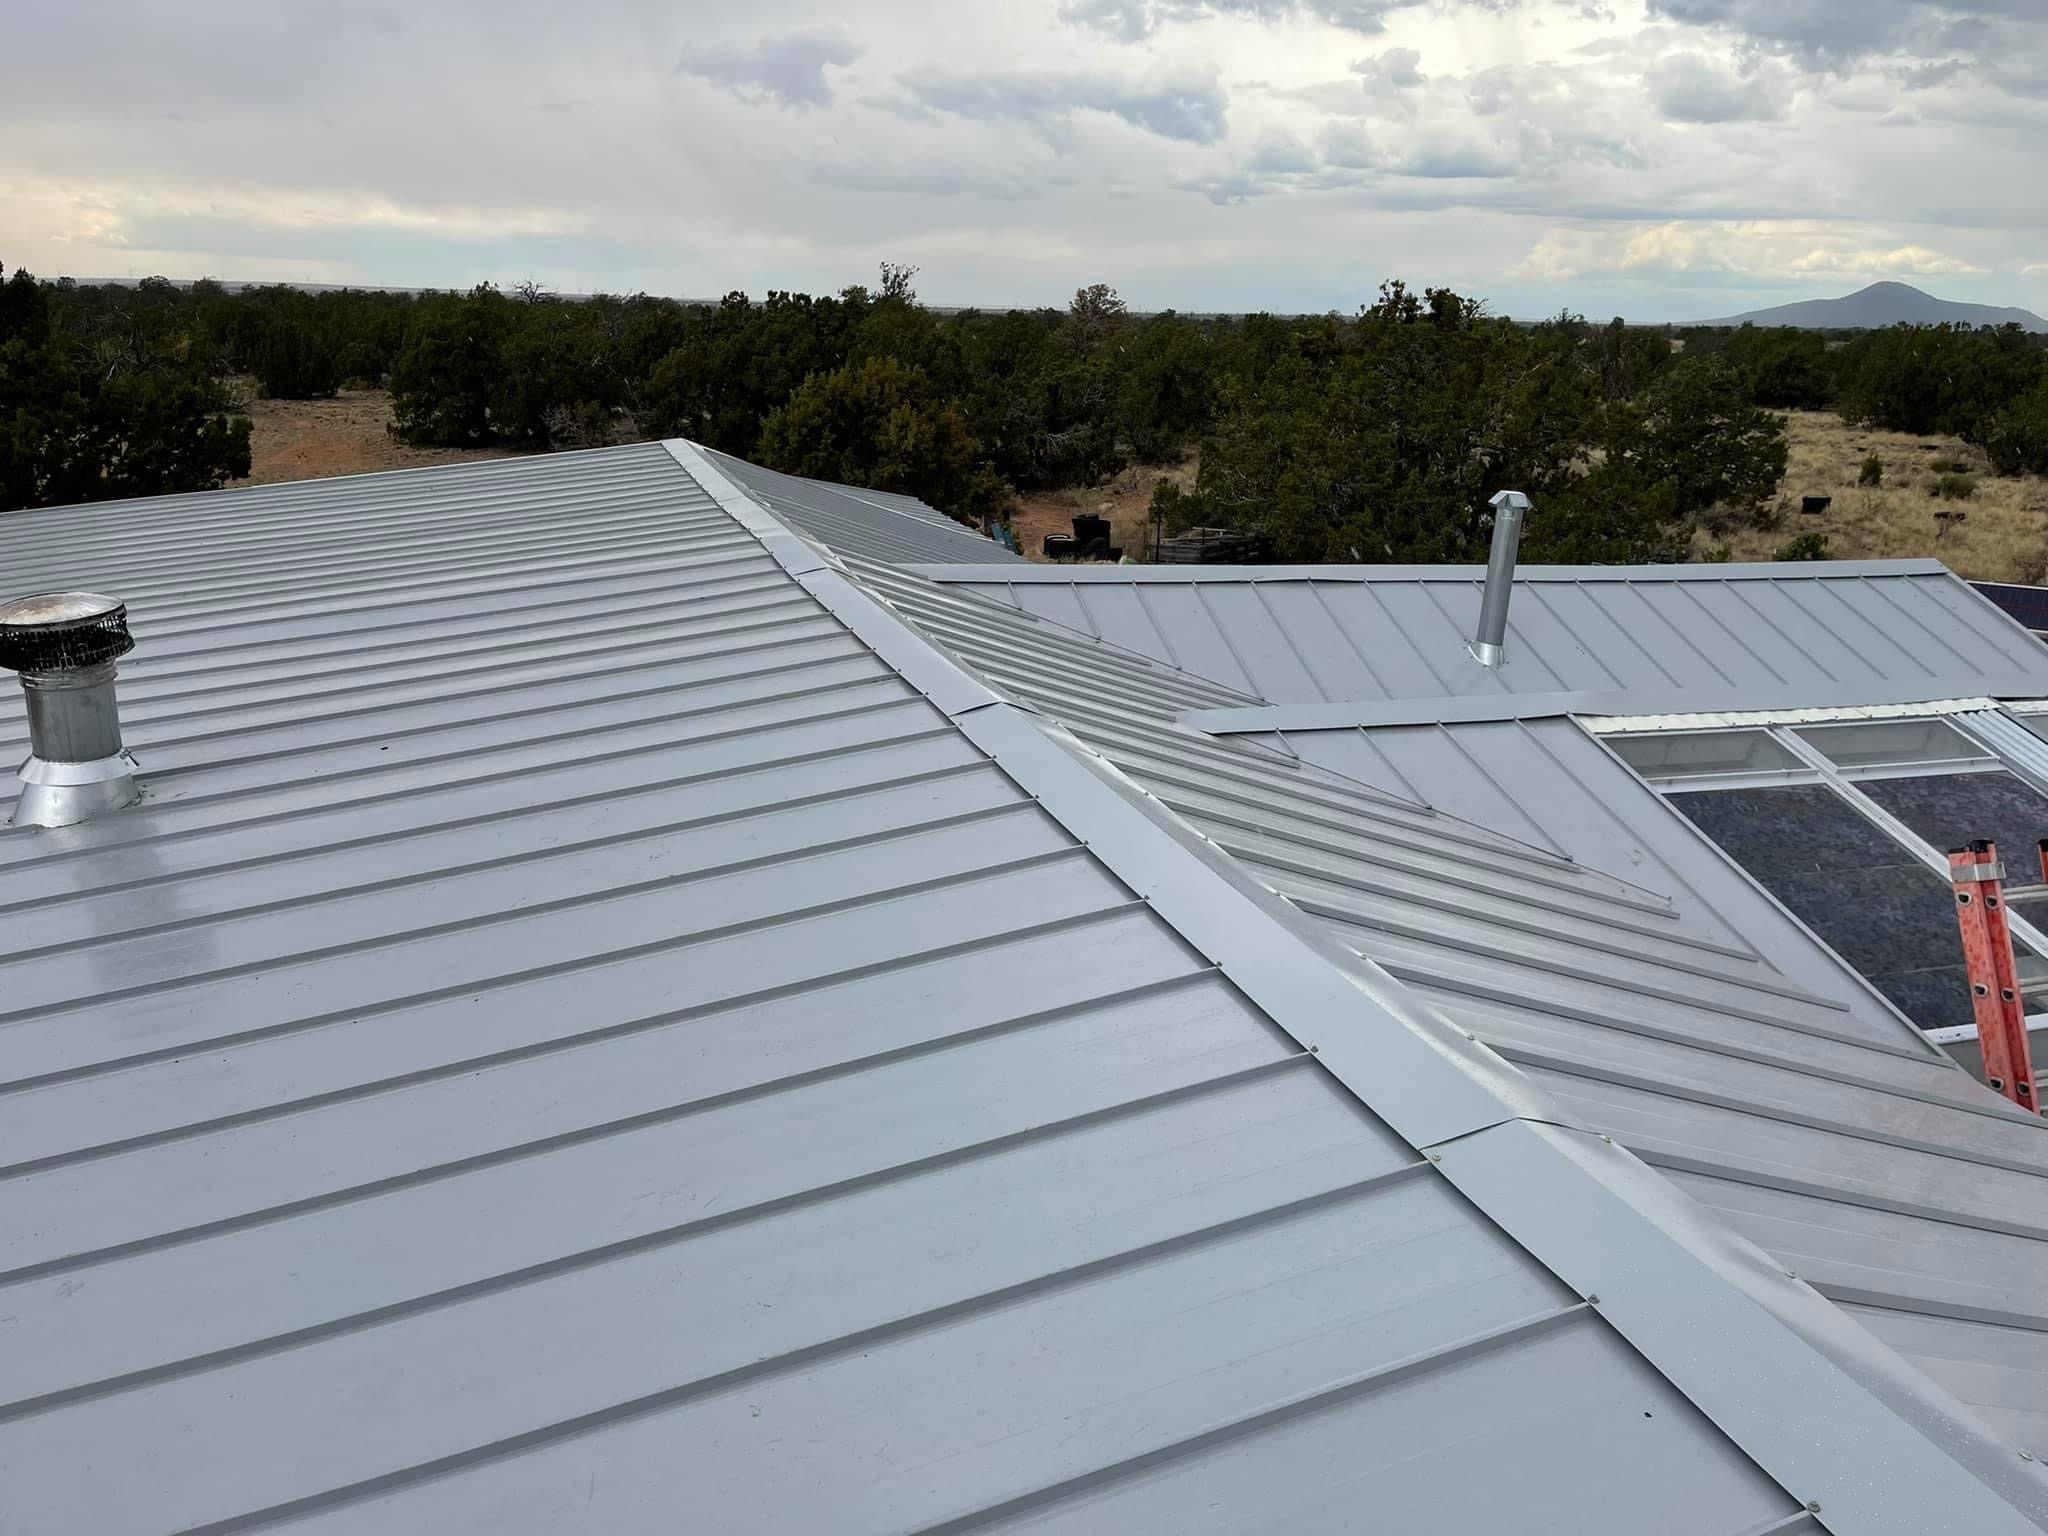 Roofing Project